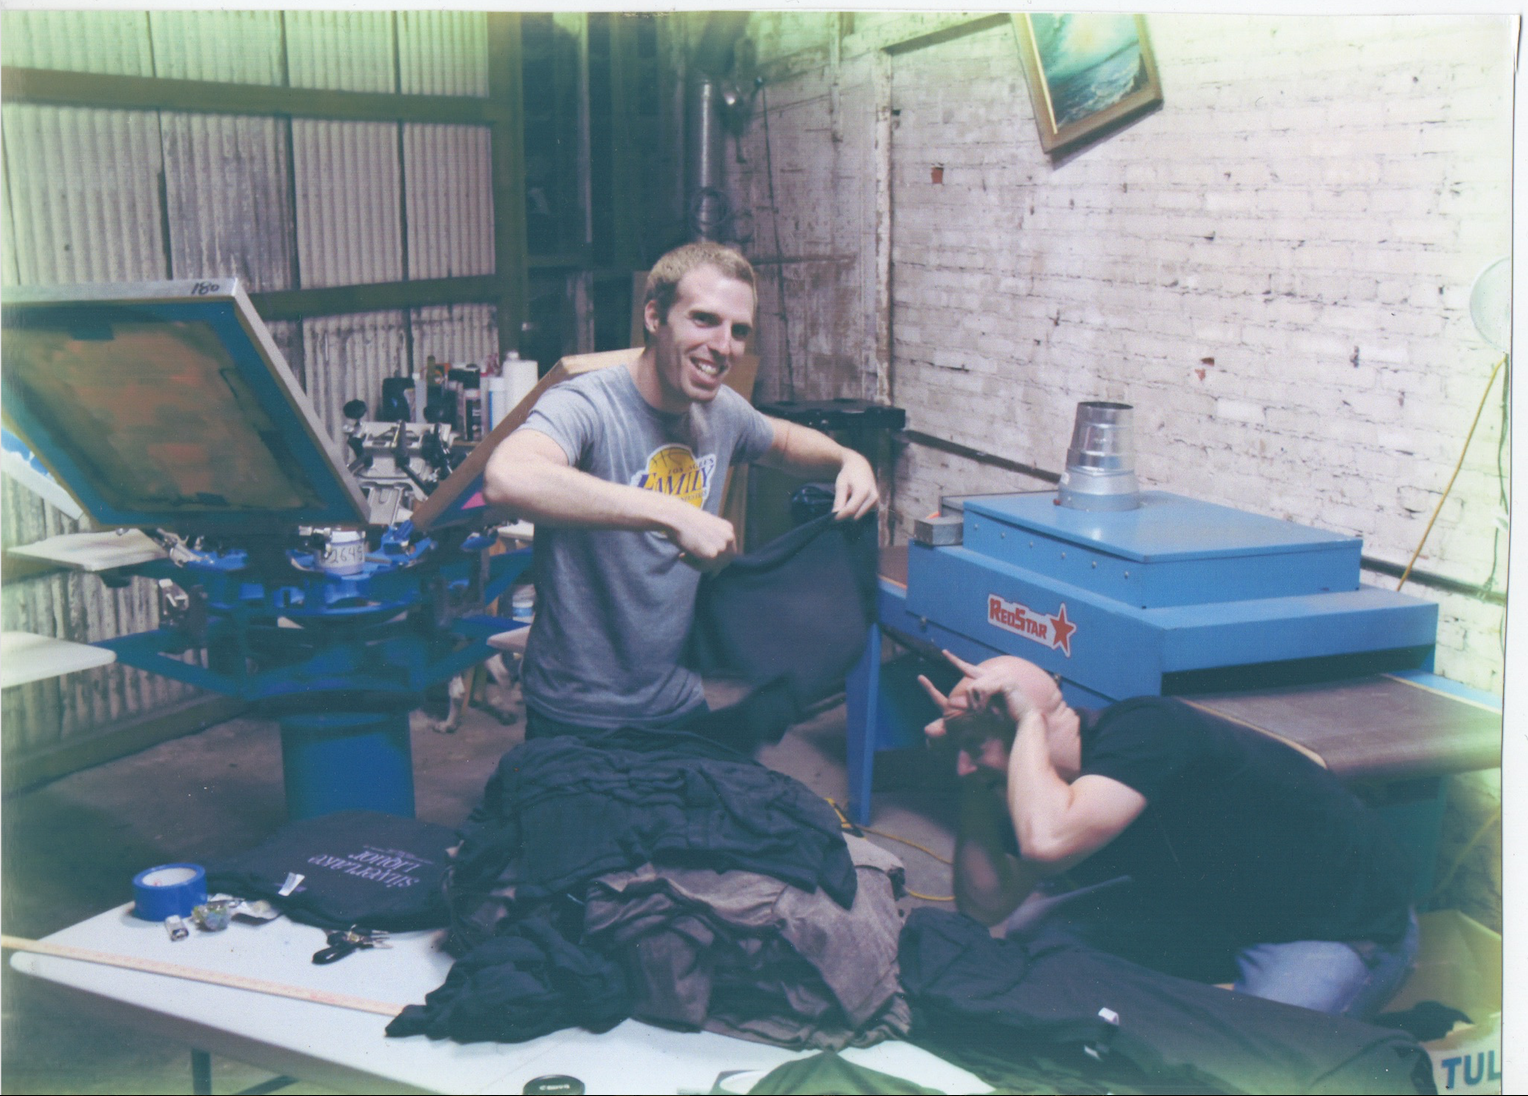 Max (left) and Alex (right) in the first warehouse space they rented in L.A.